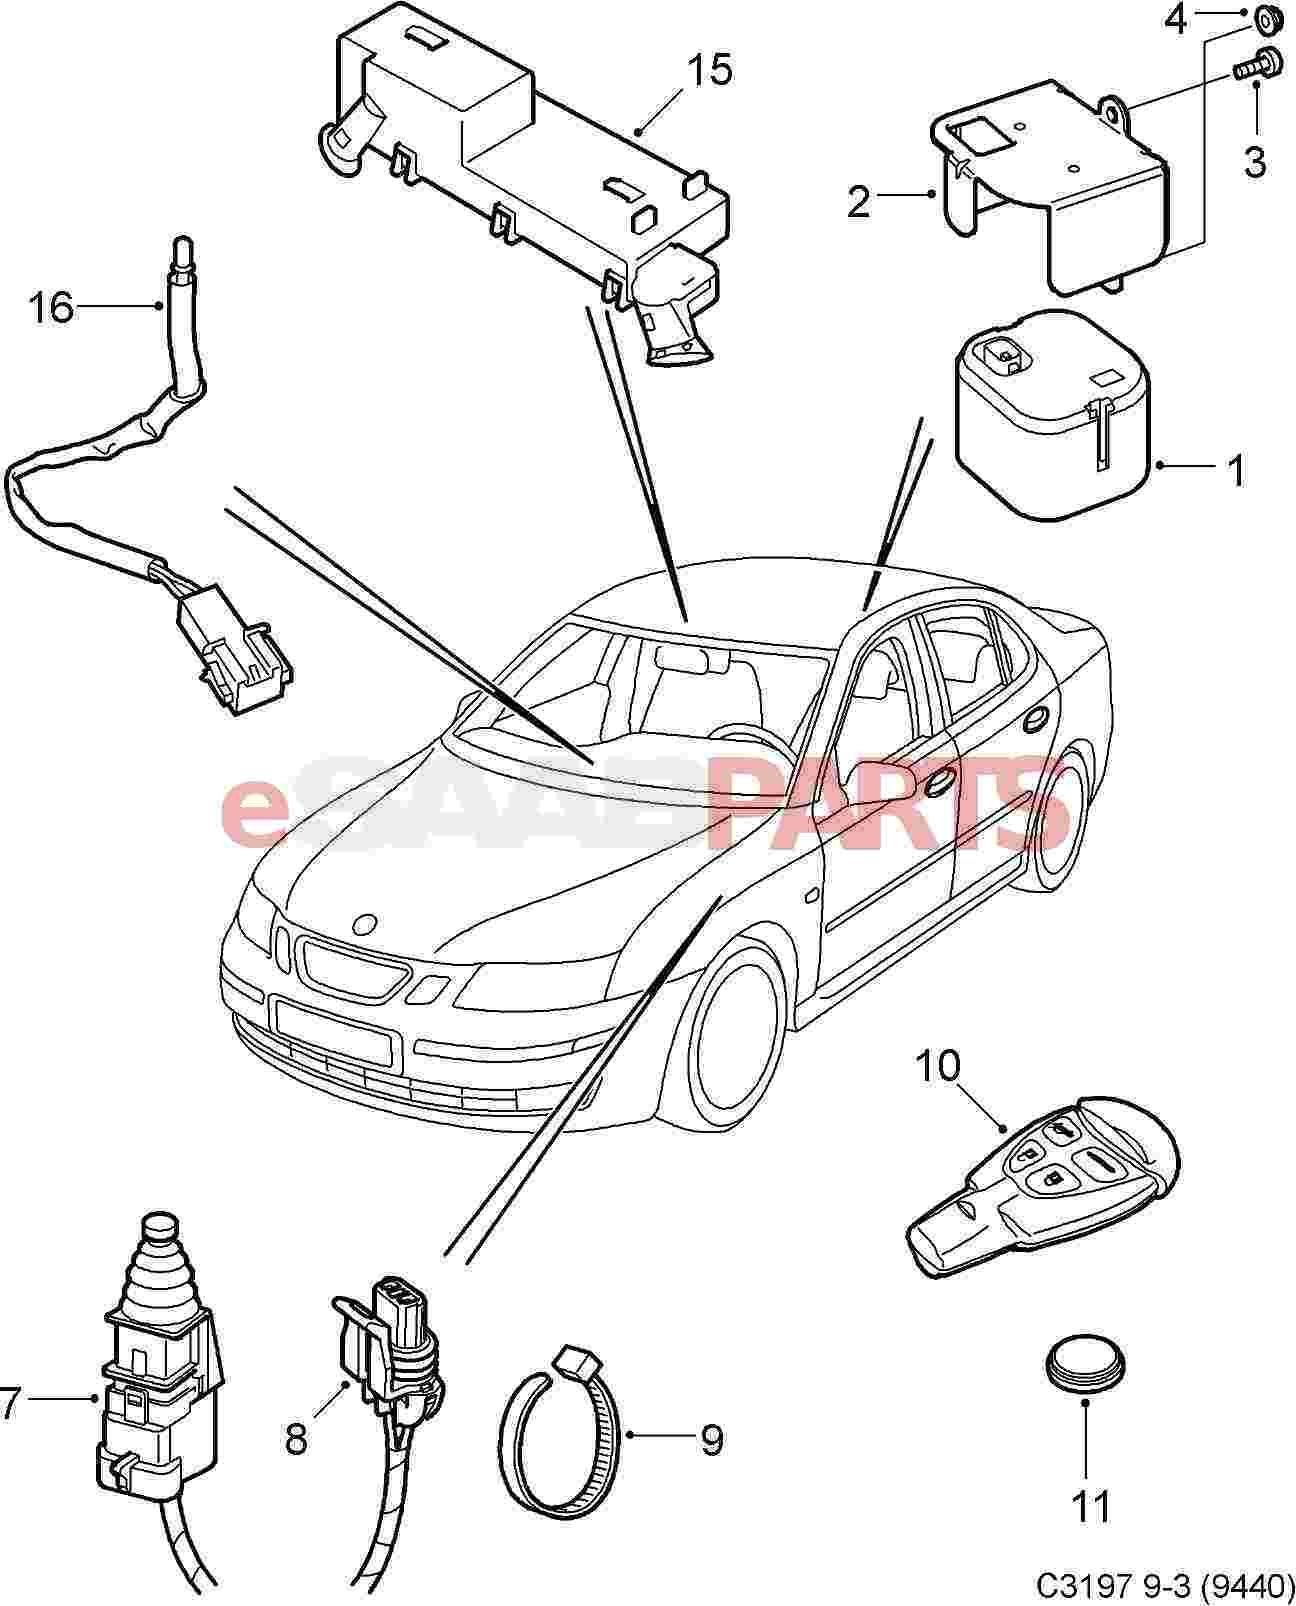 Engine Diagram 1996 Ford Ranger 4 0l Efi as well 2003 Saab 9 3 Parts Wiring Diagrams further Coolant Temperature Sensor Test moreover 1321459 Excessive Vapor Smell From Charcoal Canister 6 8 V10 further Page 5624. on toyota fuel sending unit wiring diagram